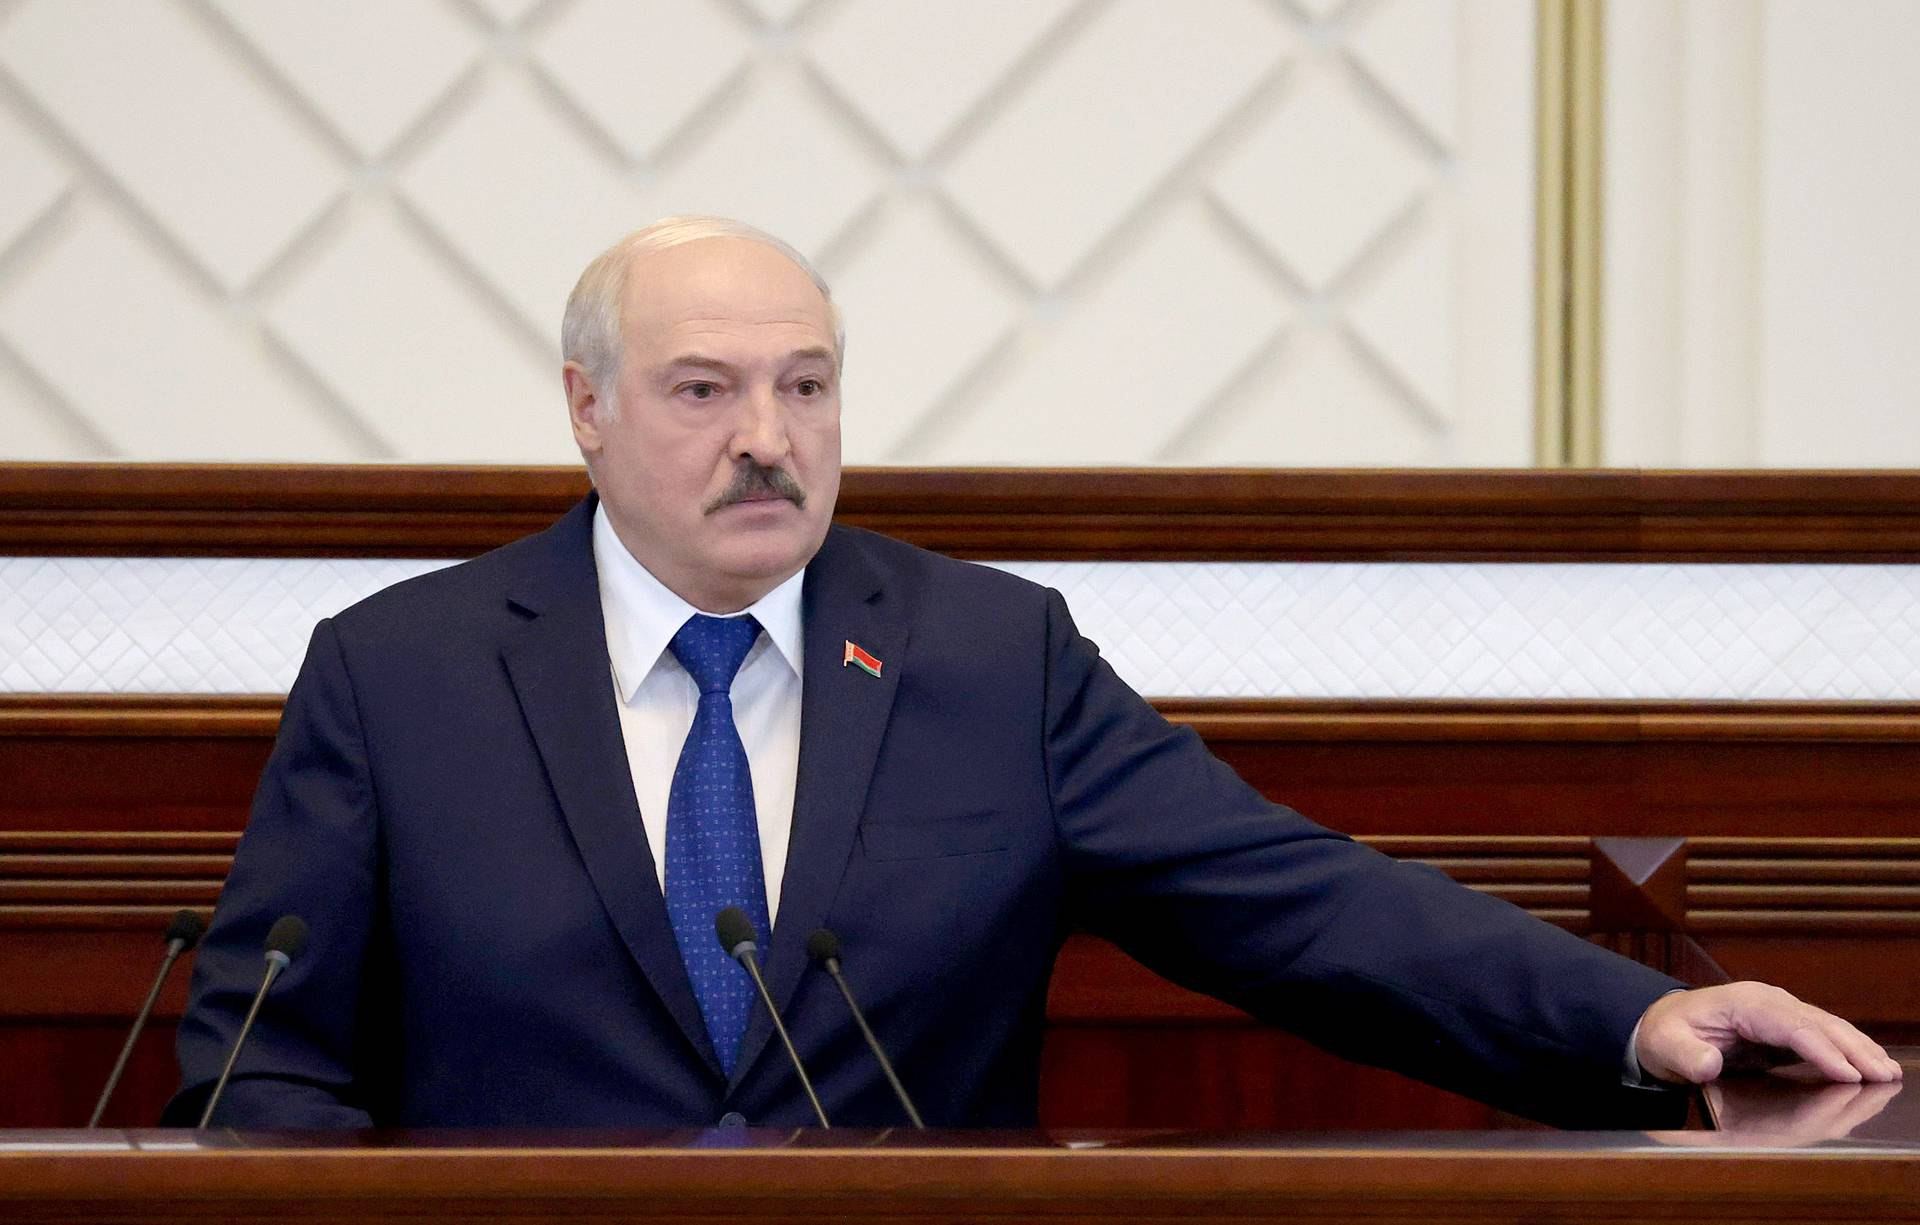 'This Is War': Lukashenko's First Public Comments On RyanAir Incident